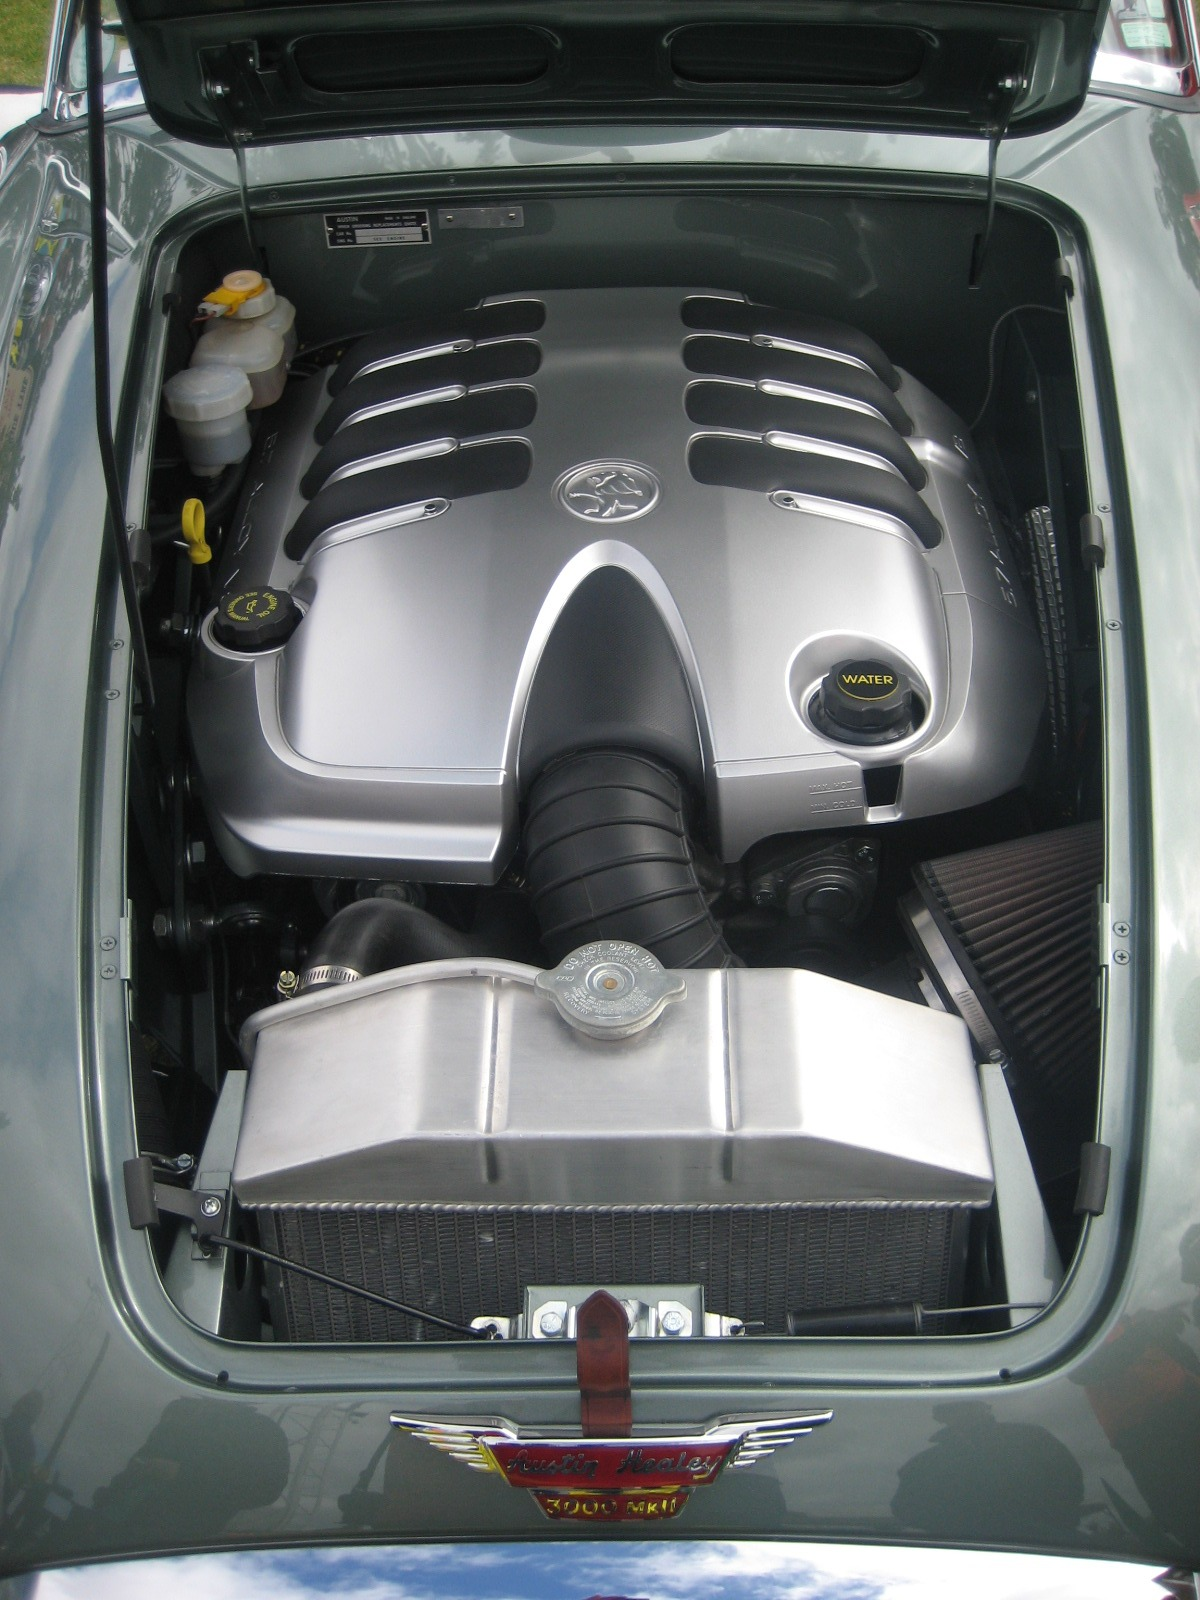 The 5.7 Liter Holden LS1 V8 just seems to fit perfectly.